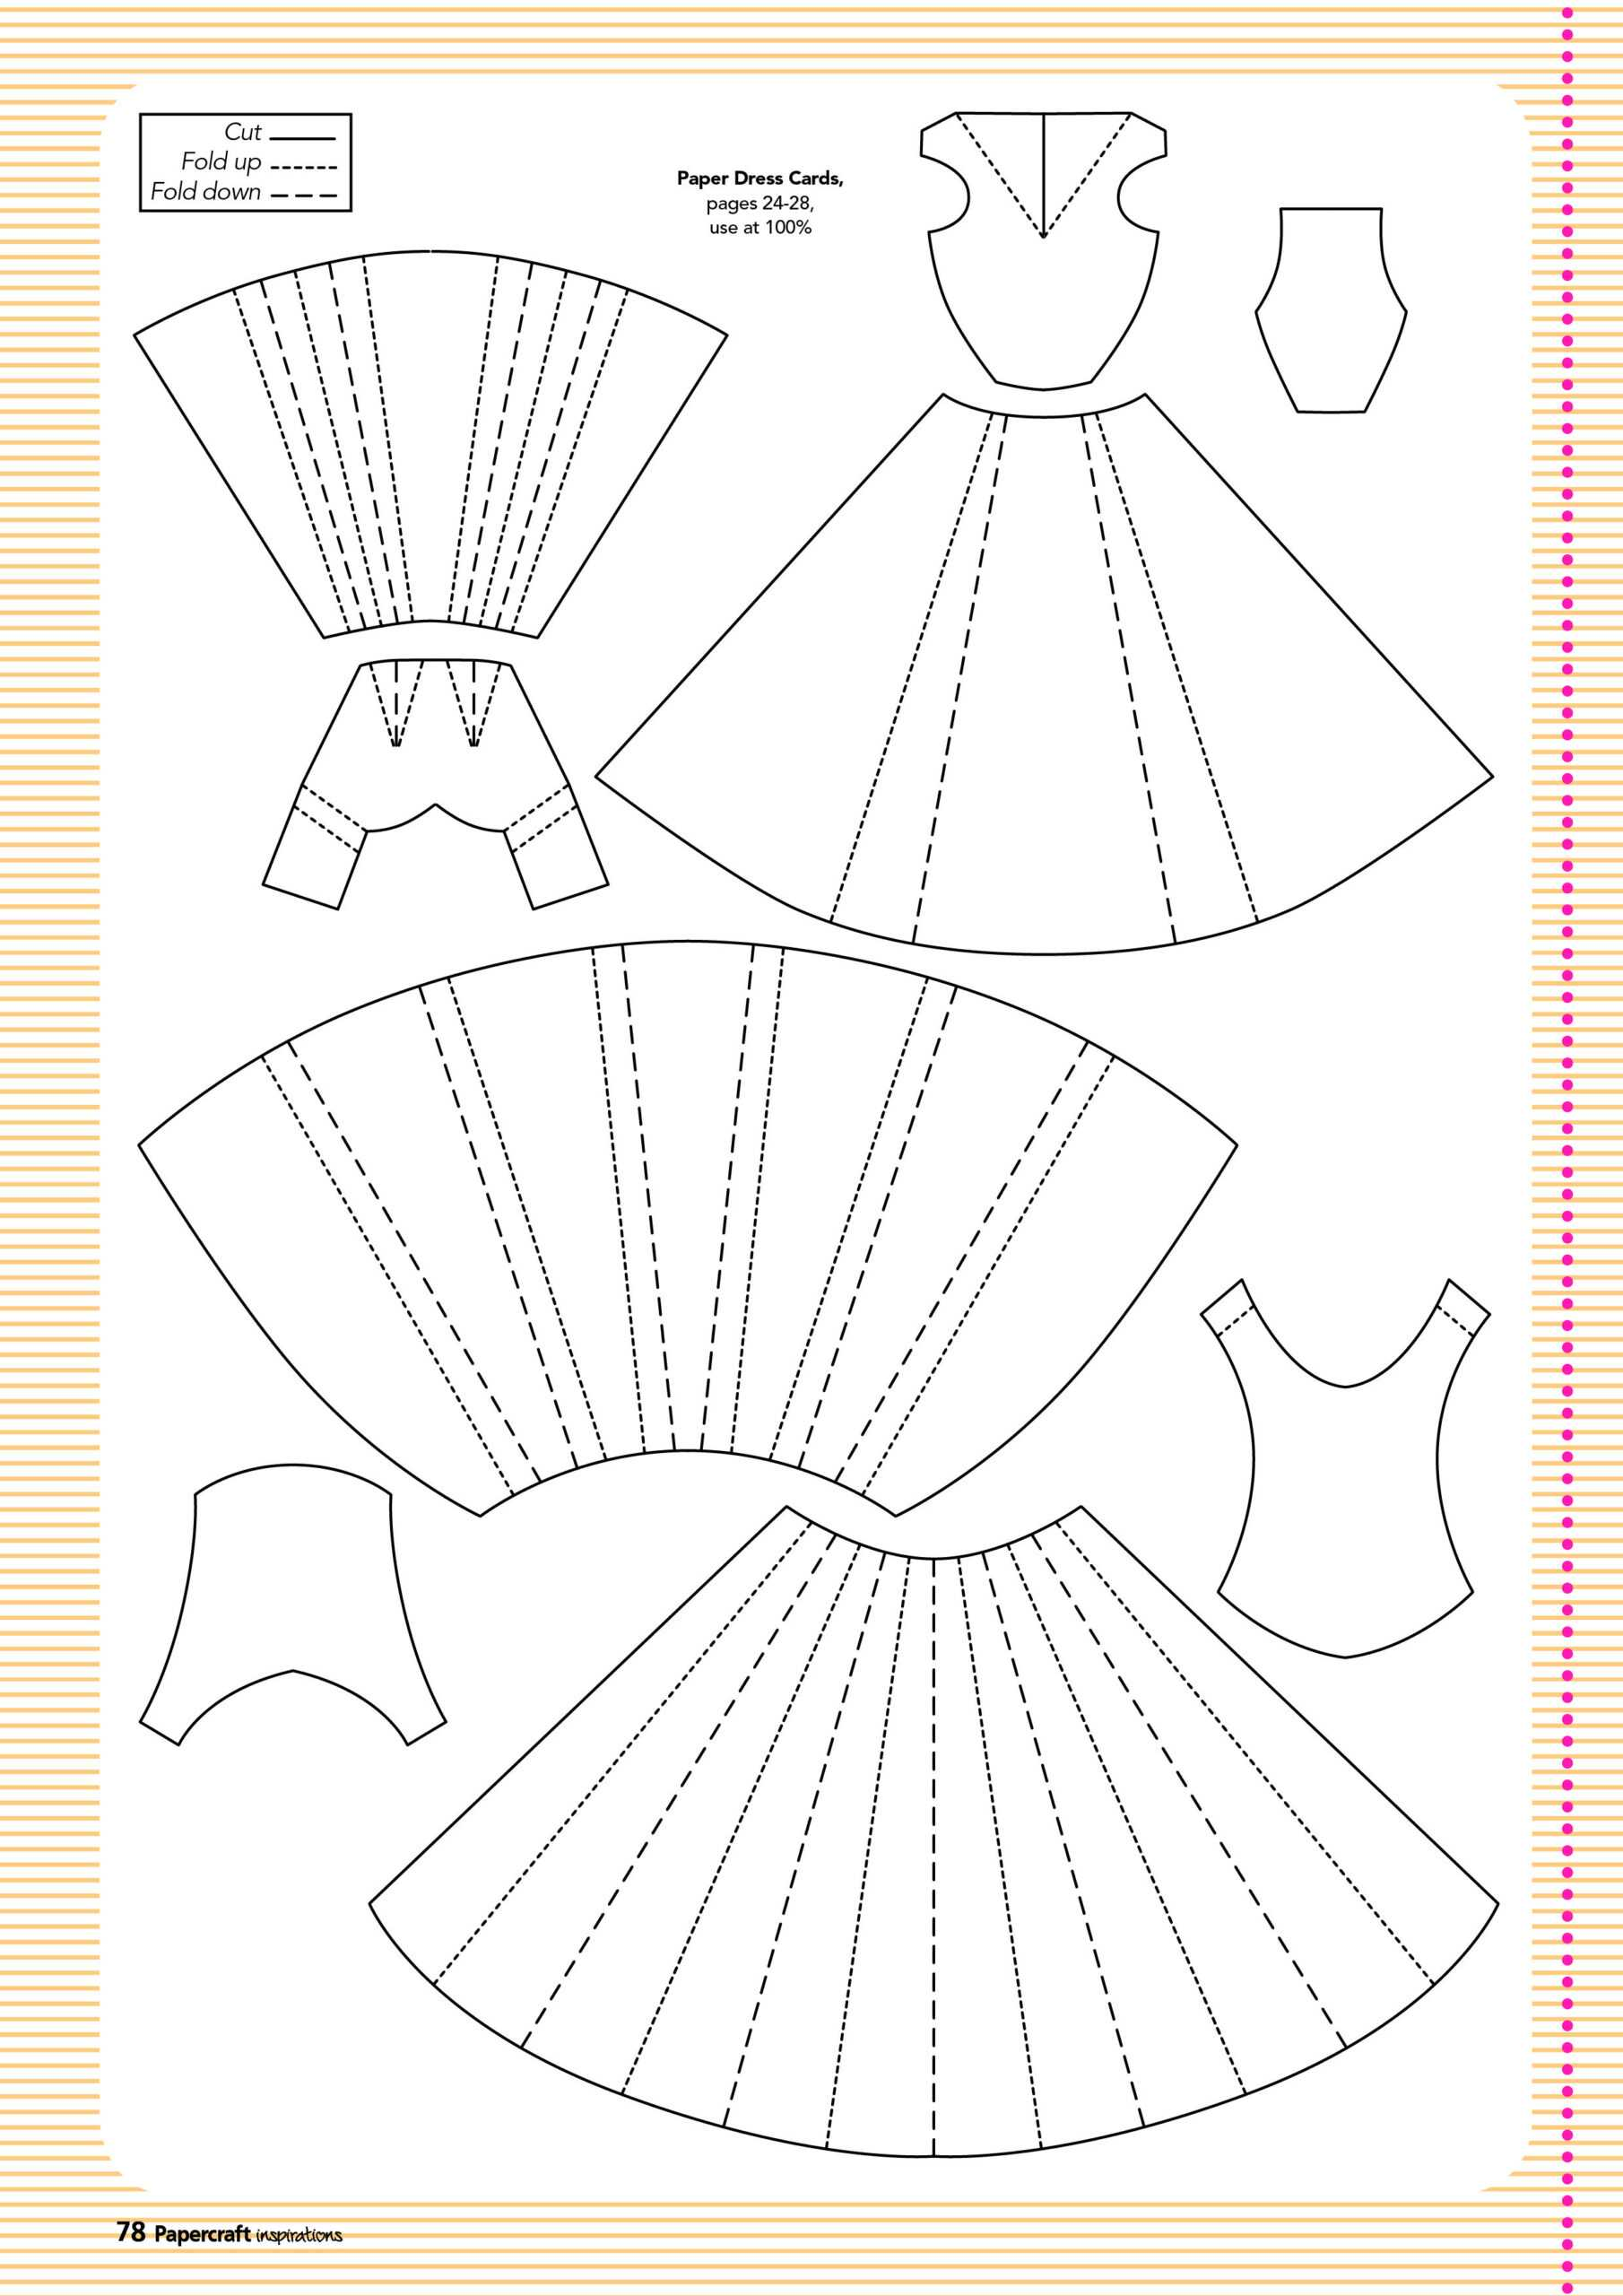 Free Templates From Papercraft Inspirations 129 | Paper inside Card Folding Templates Free